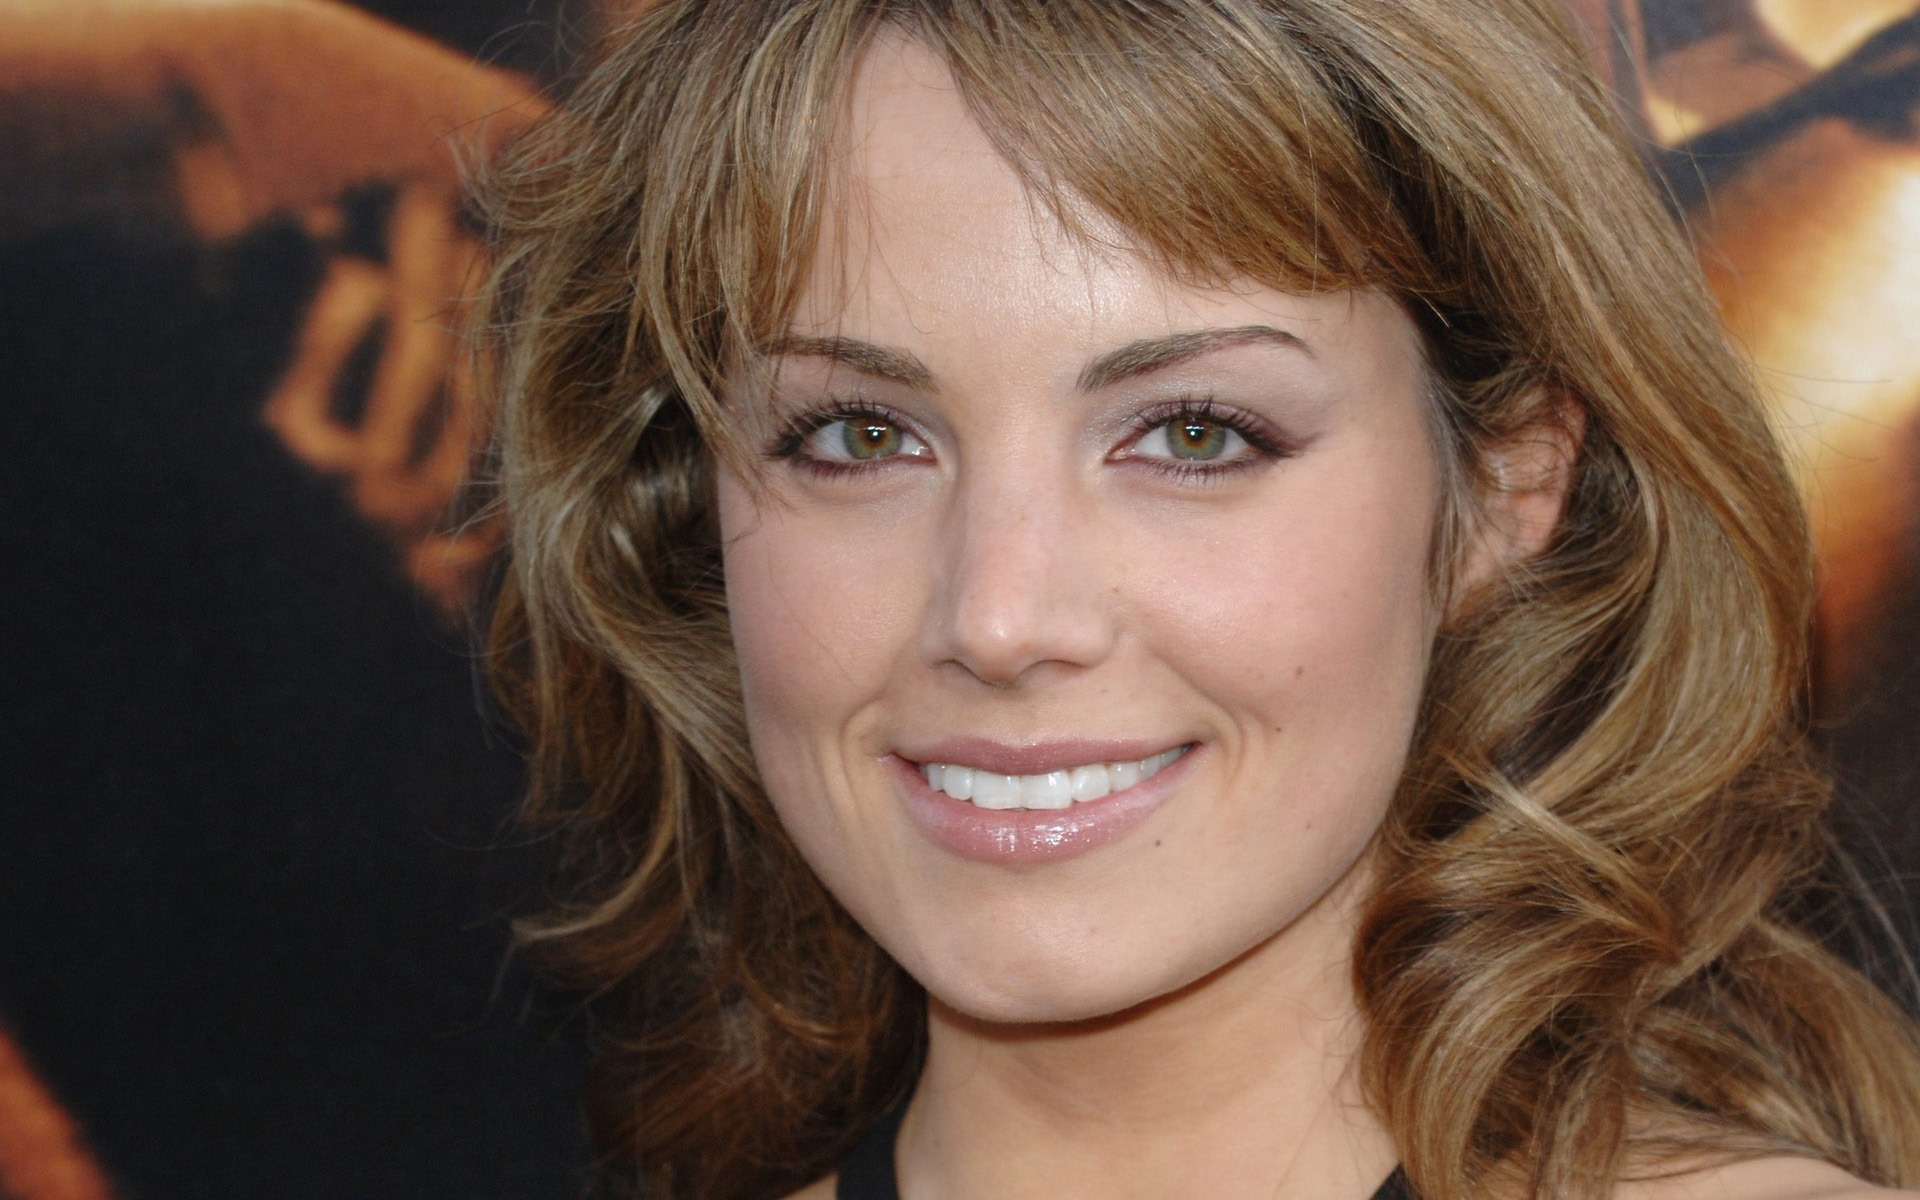 Watch Erica Durance video